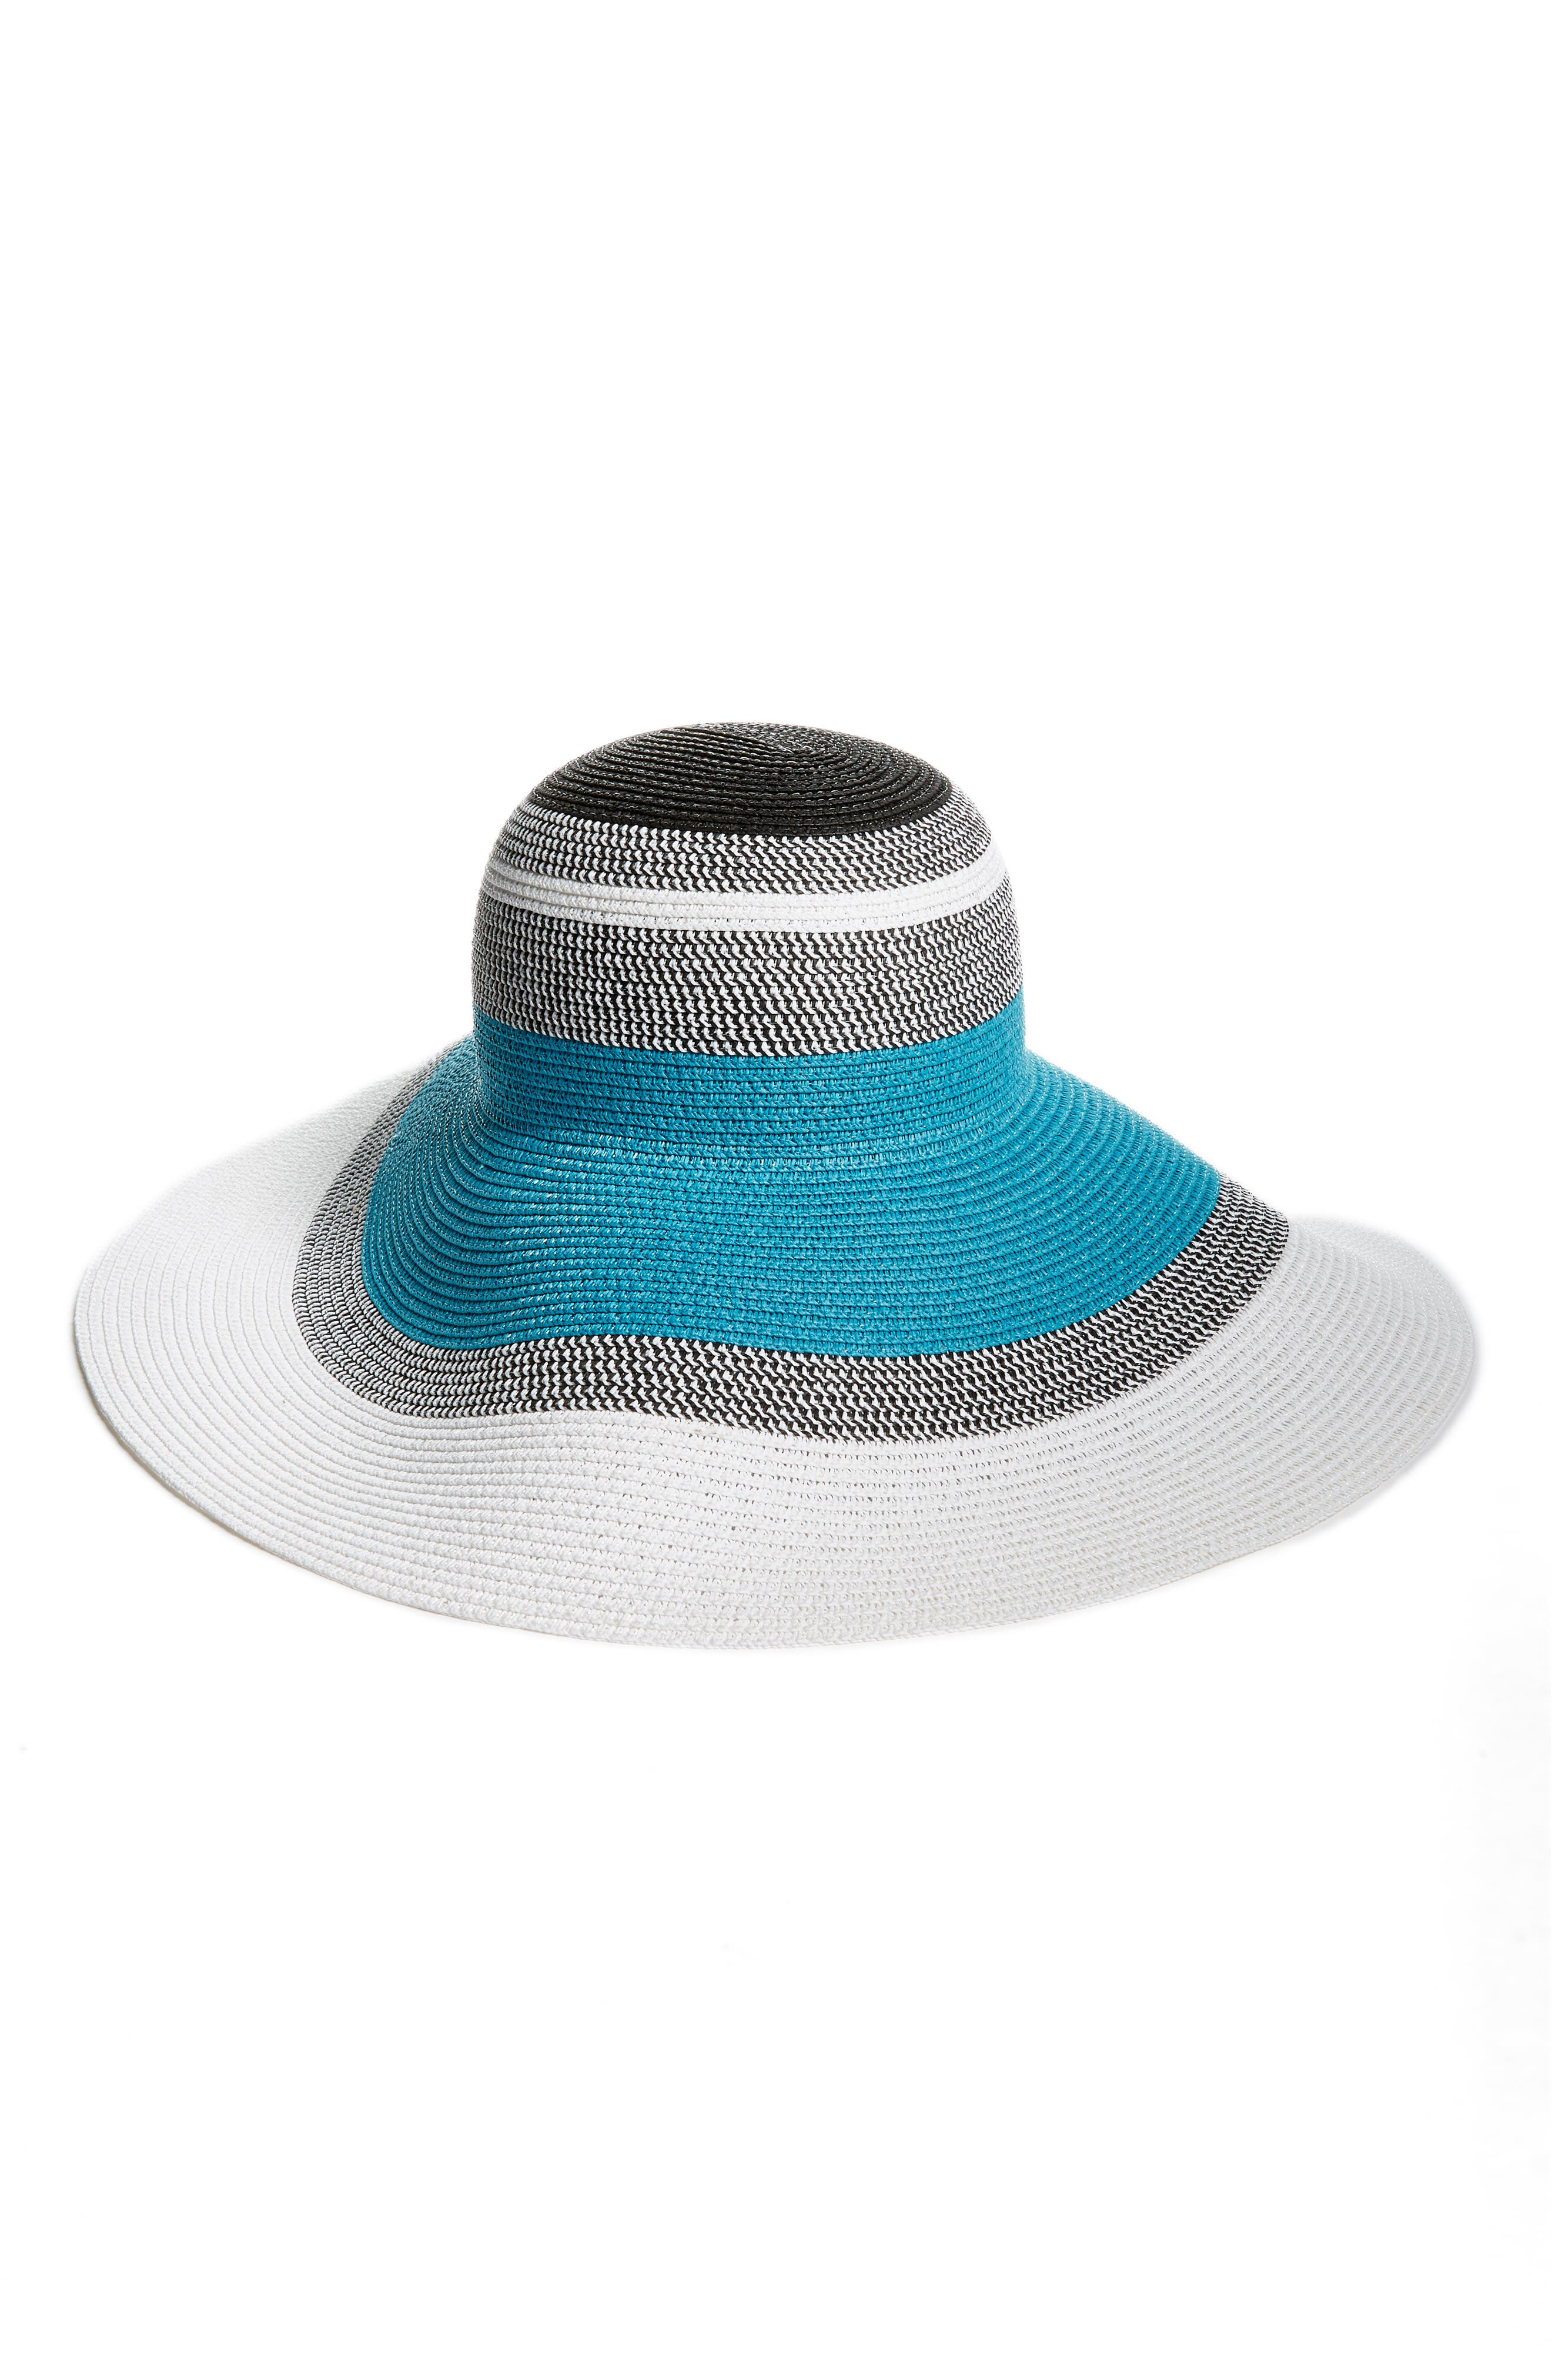 Statement Floppy Straw Hat,                             Main thumbnail 1, color,                             420